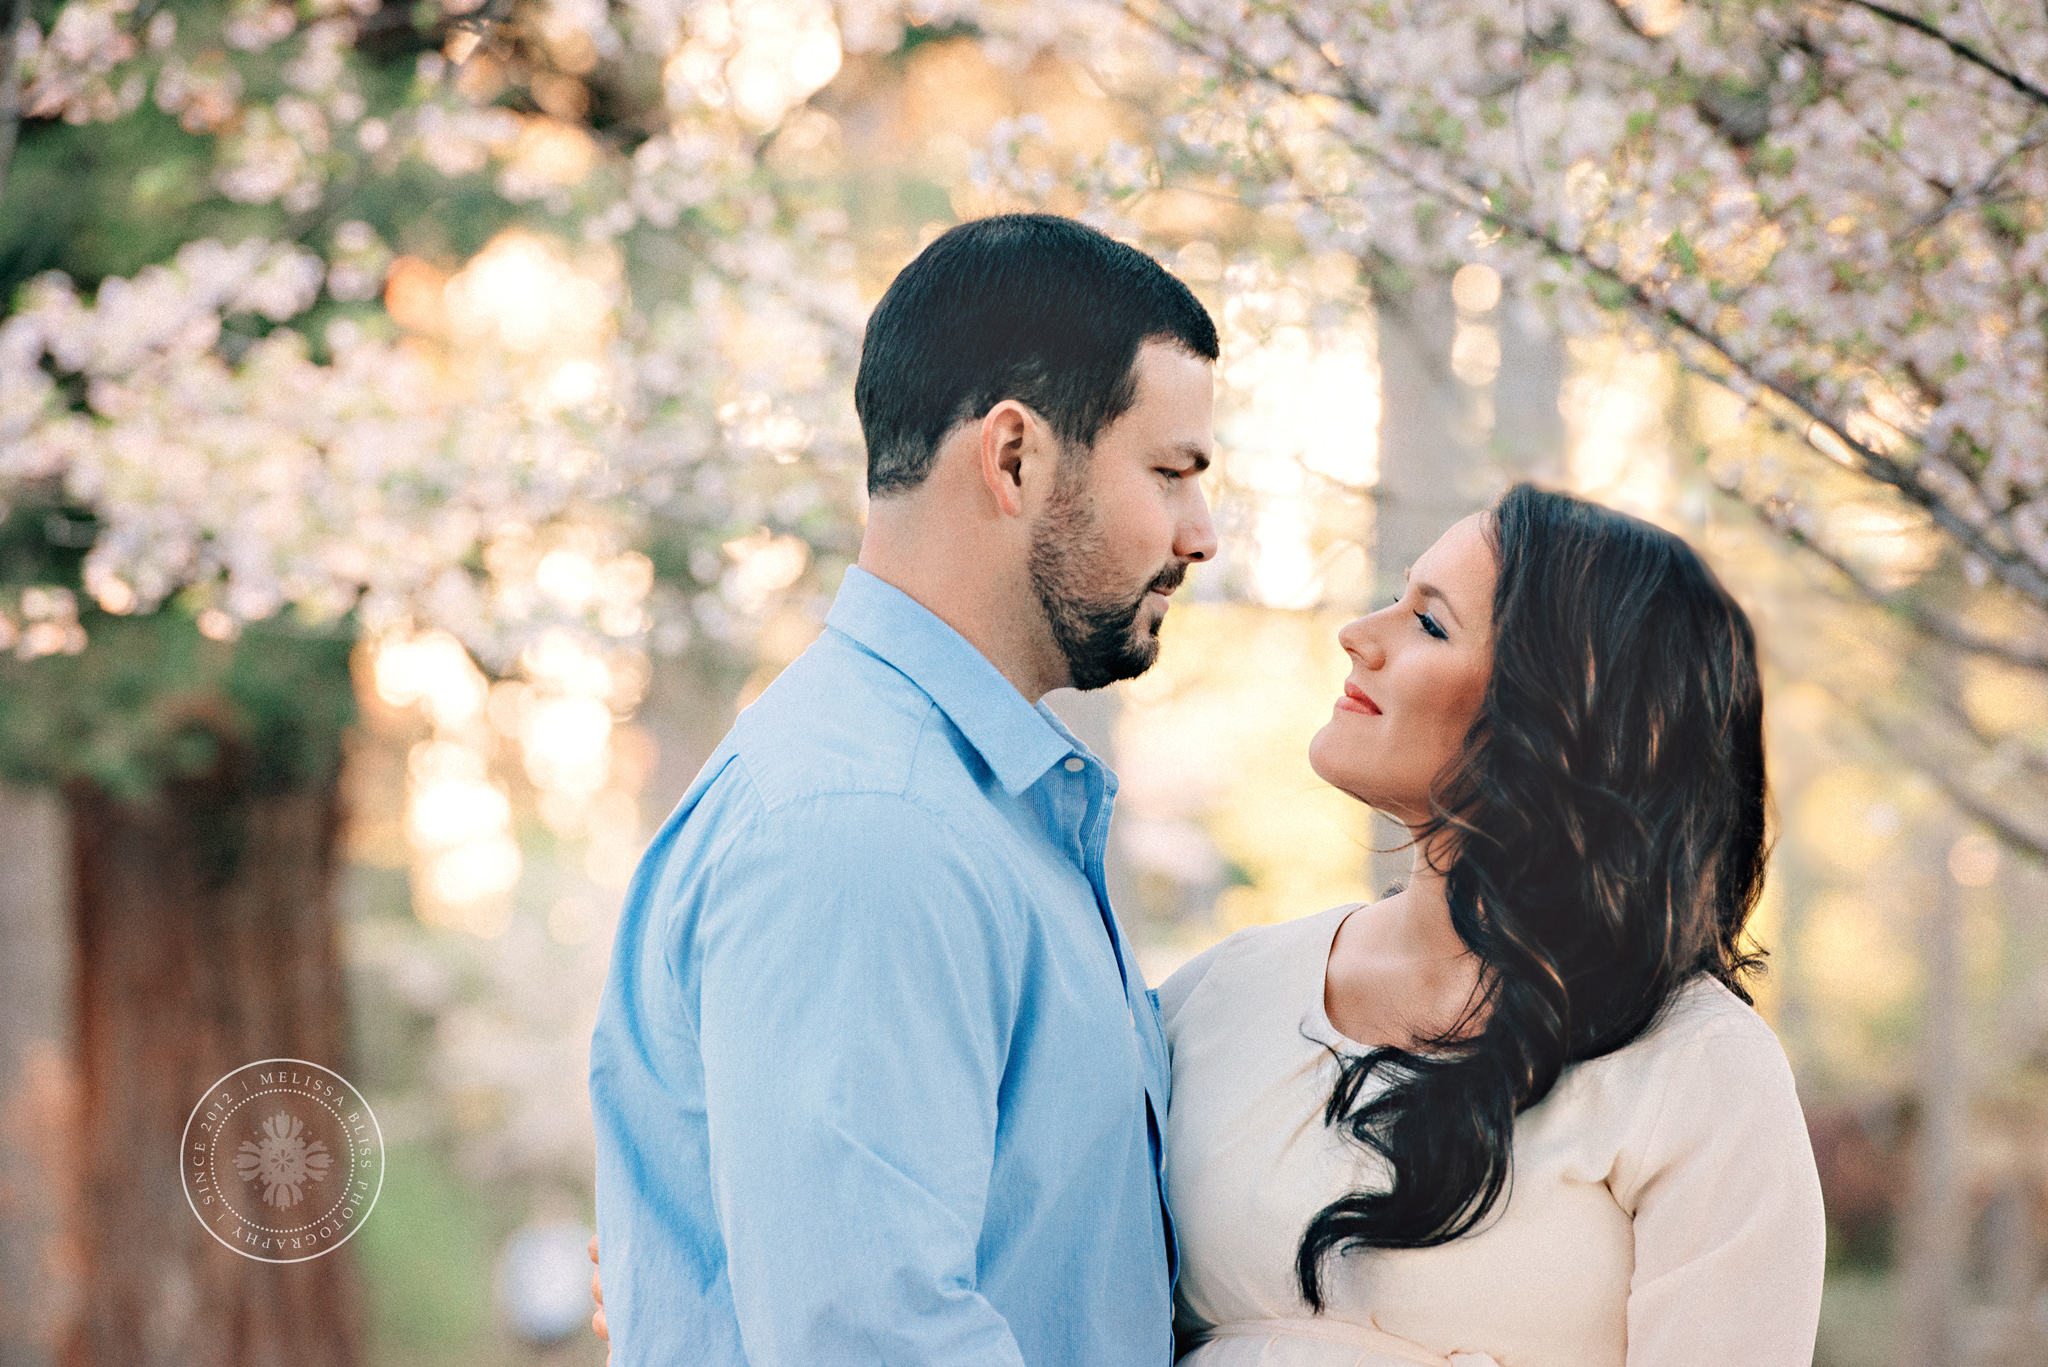 red-wing-park-cherry-blossoms-maternity-session-couple-posing-spring-flowers-va-beach